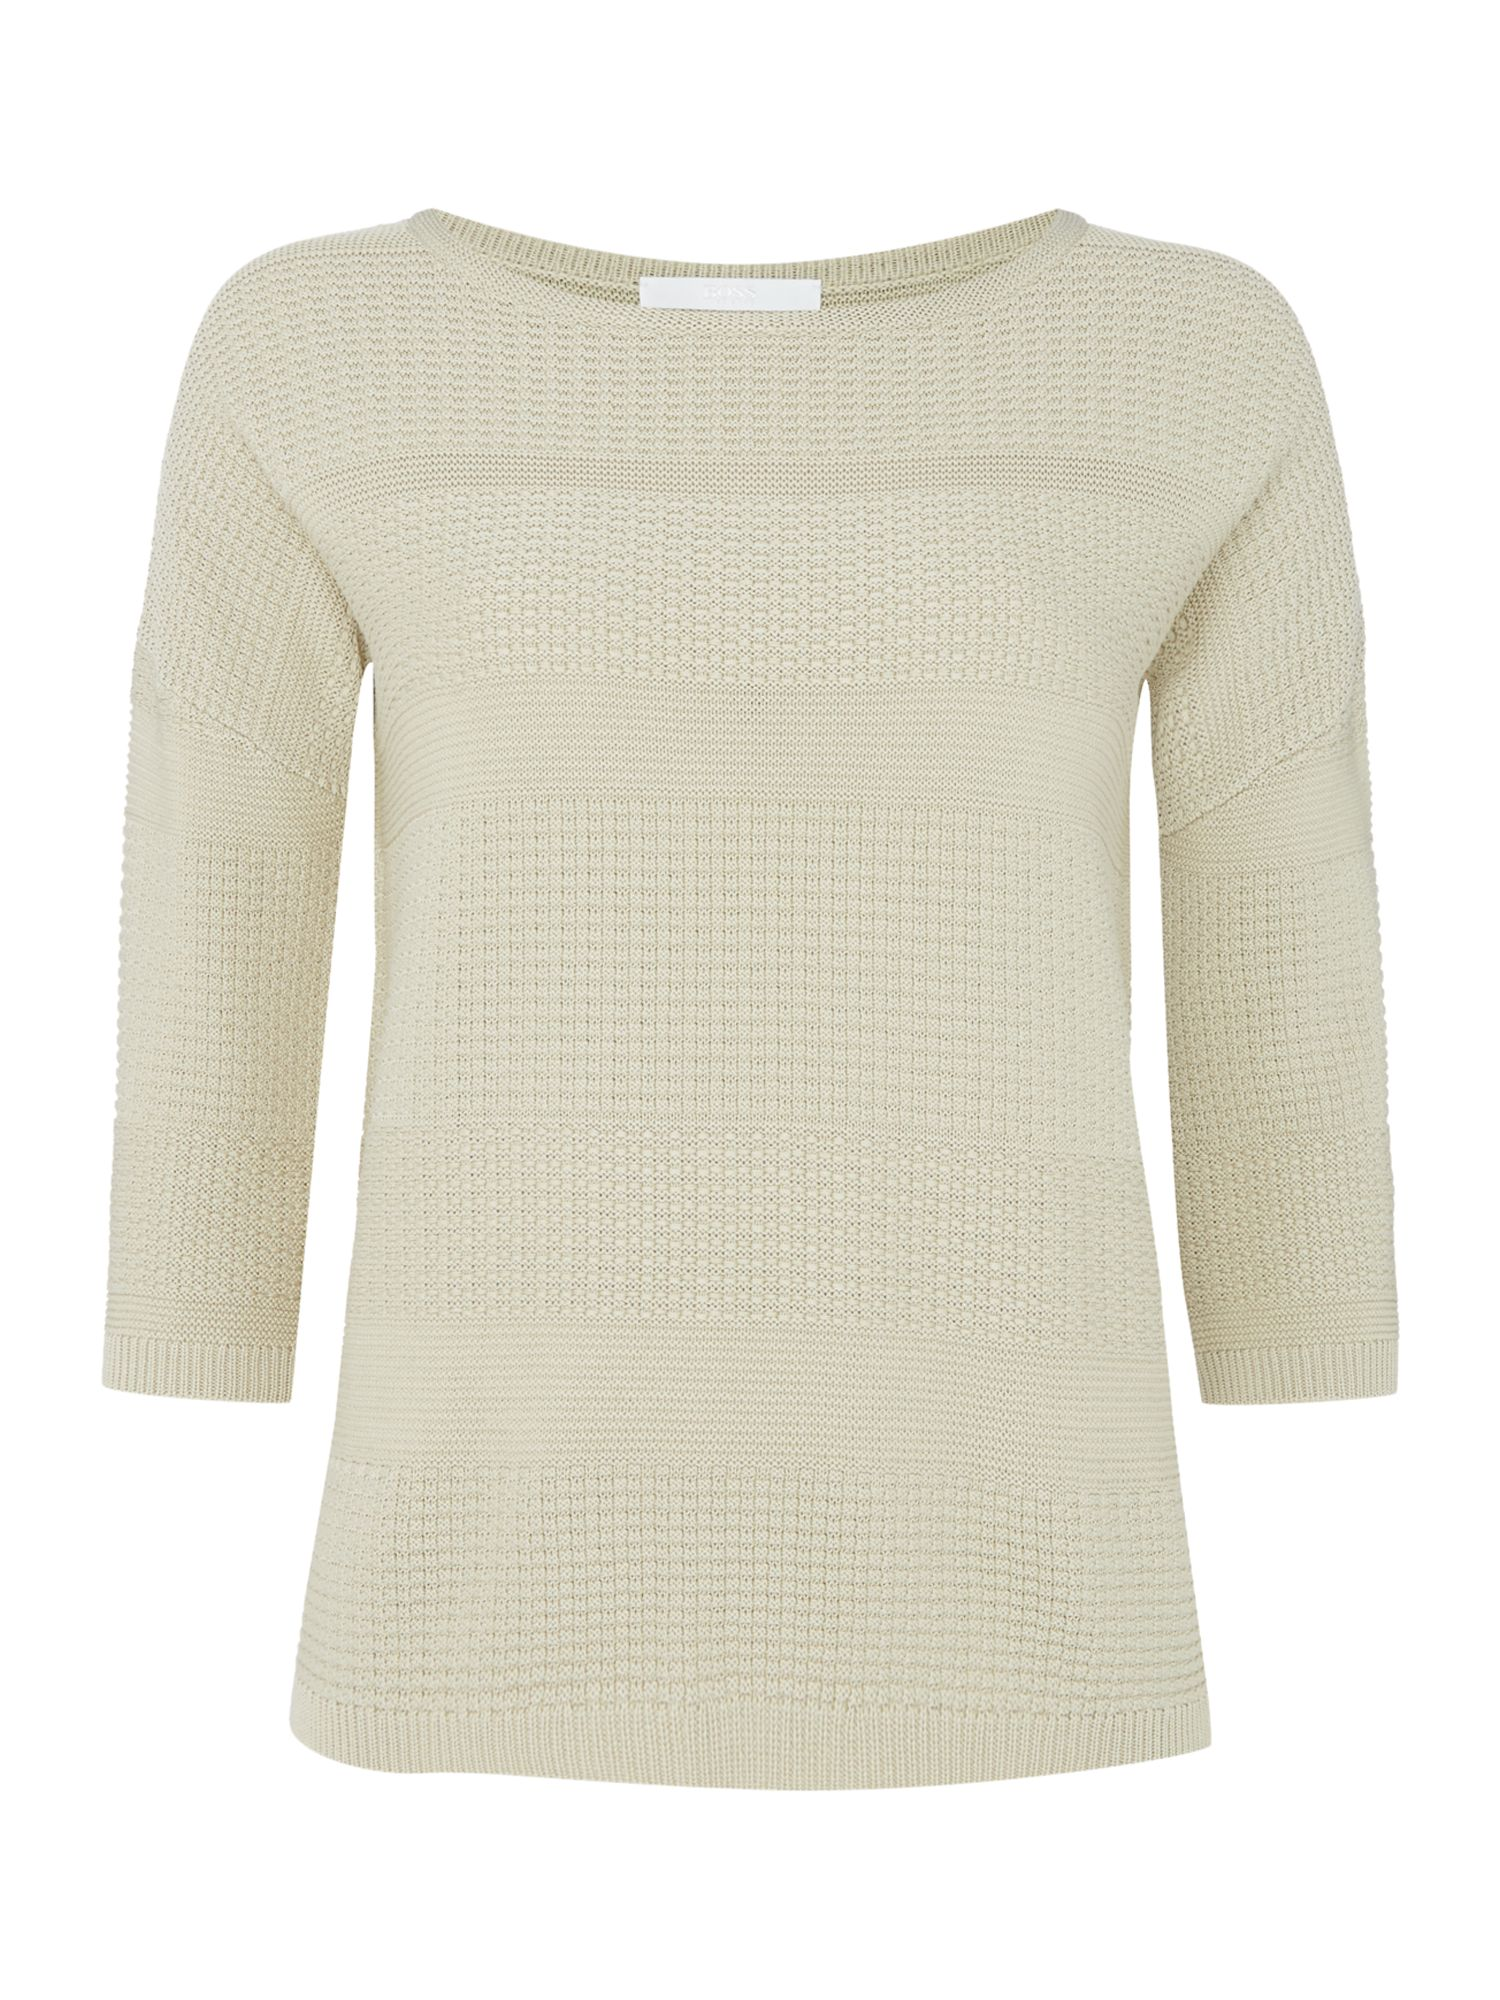 Hugo Boss 34 sleeve jumper with textured bodice Beige